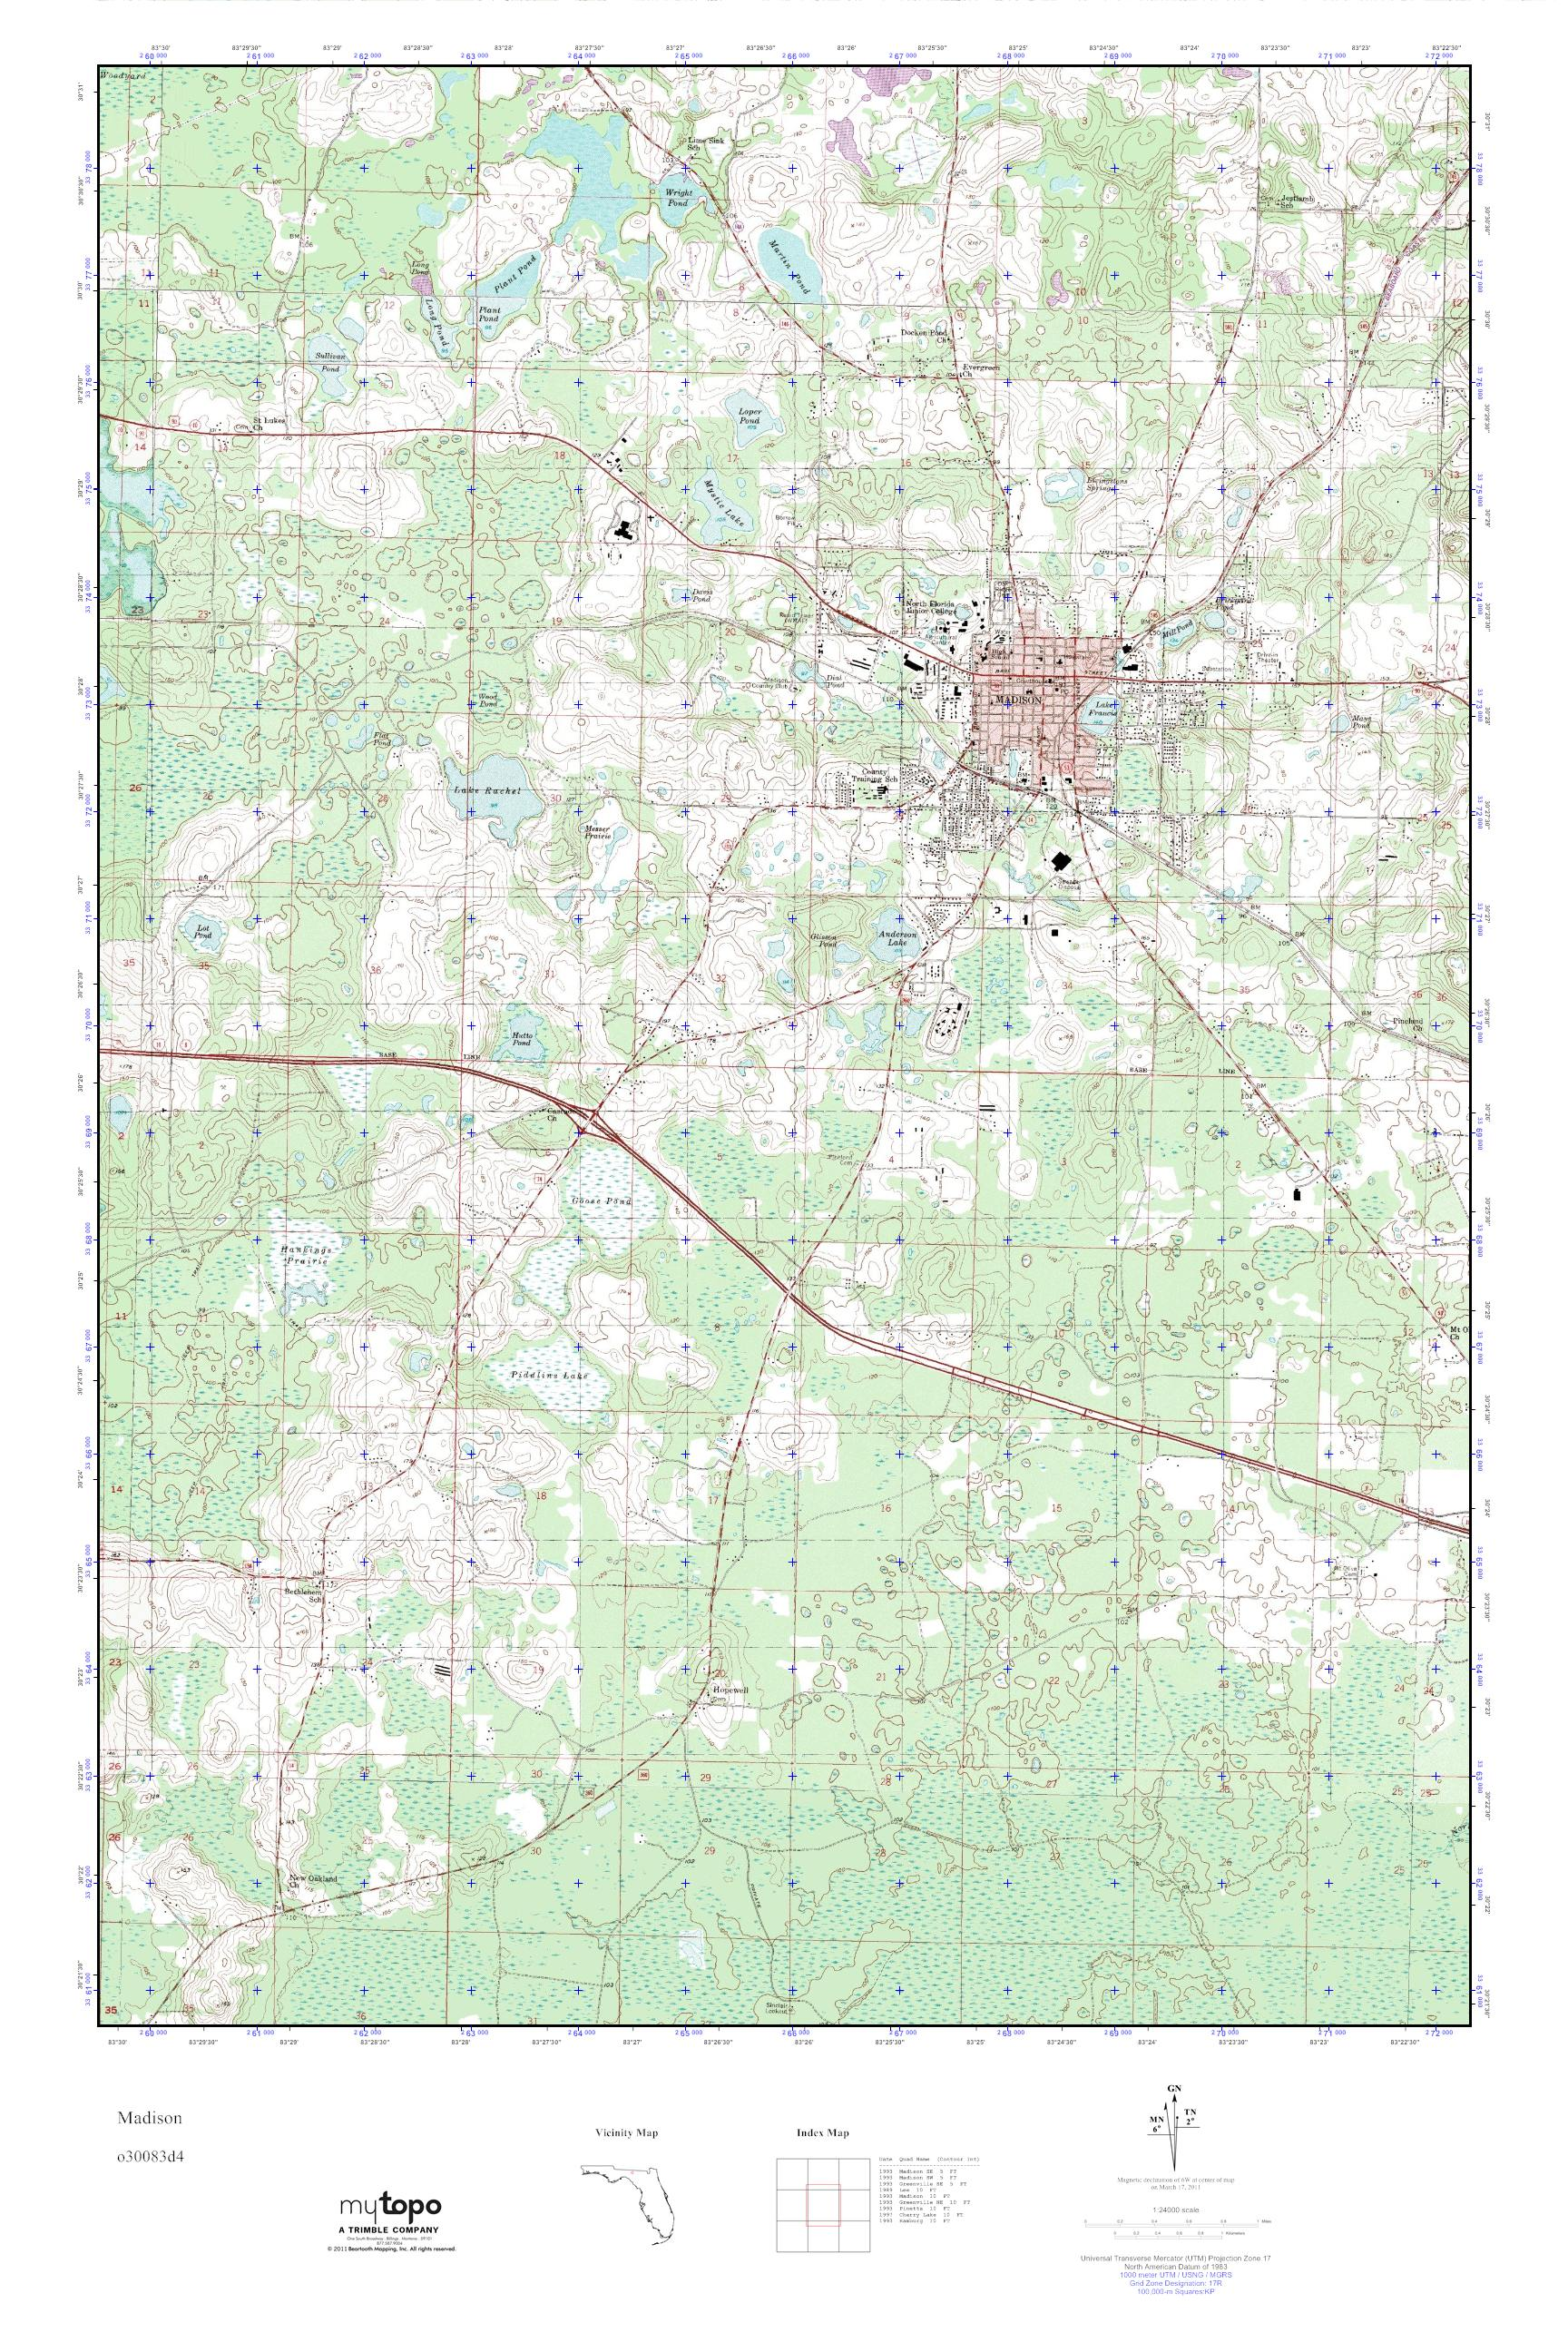 Madison Florida Map.Mytopo Madison Florida Usgs Quad Topo Map